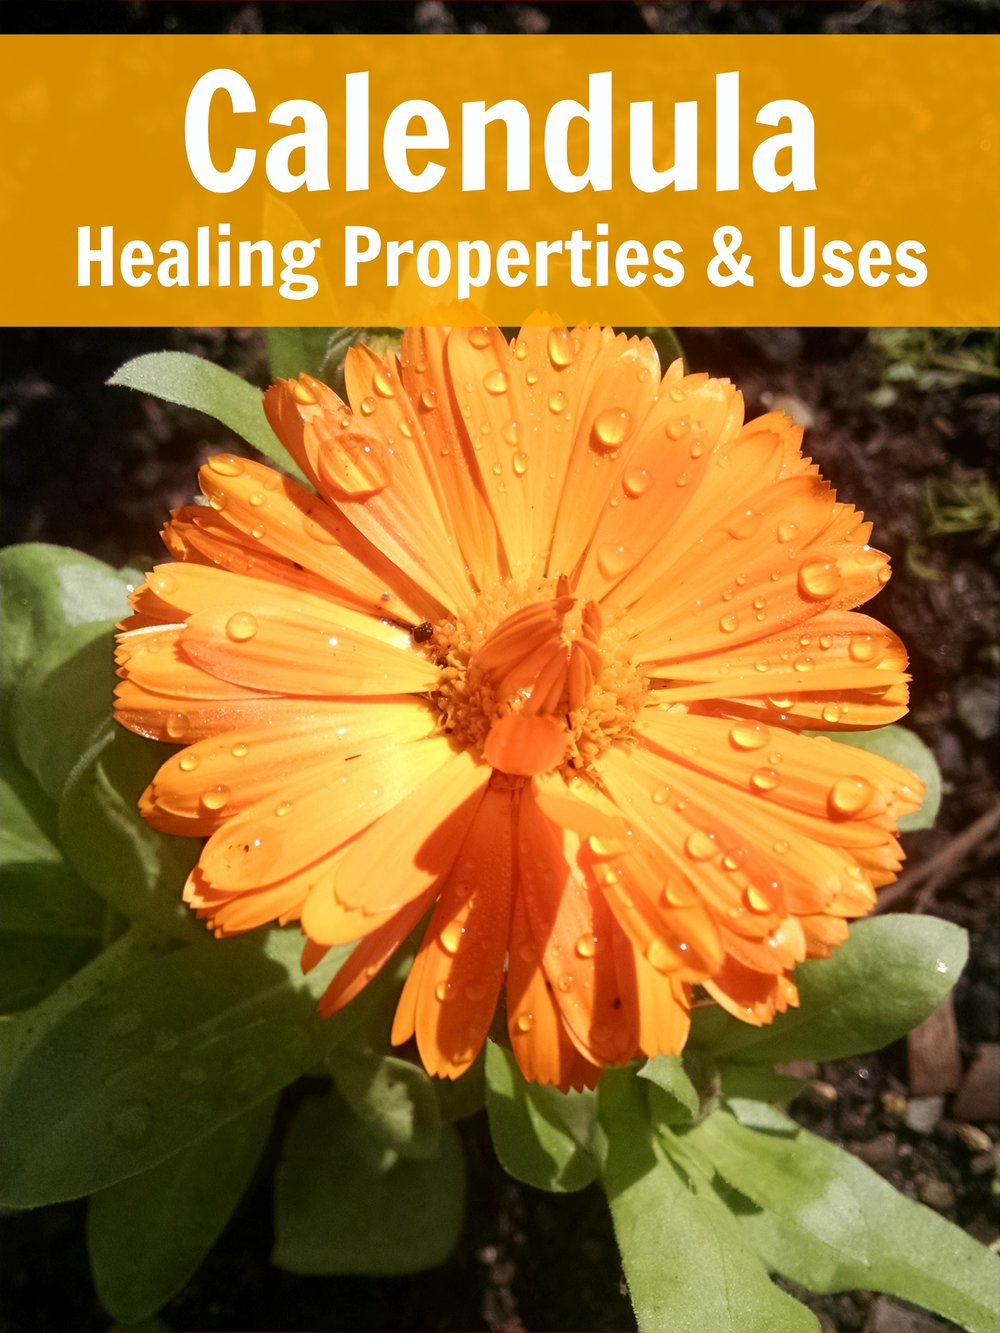 Healing properties of and uses for Calendula